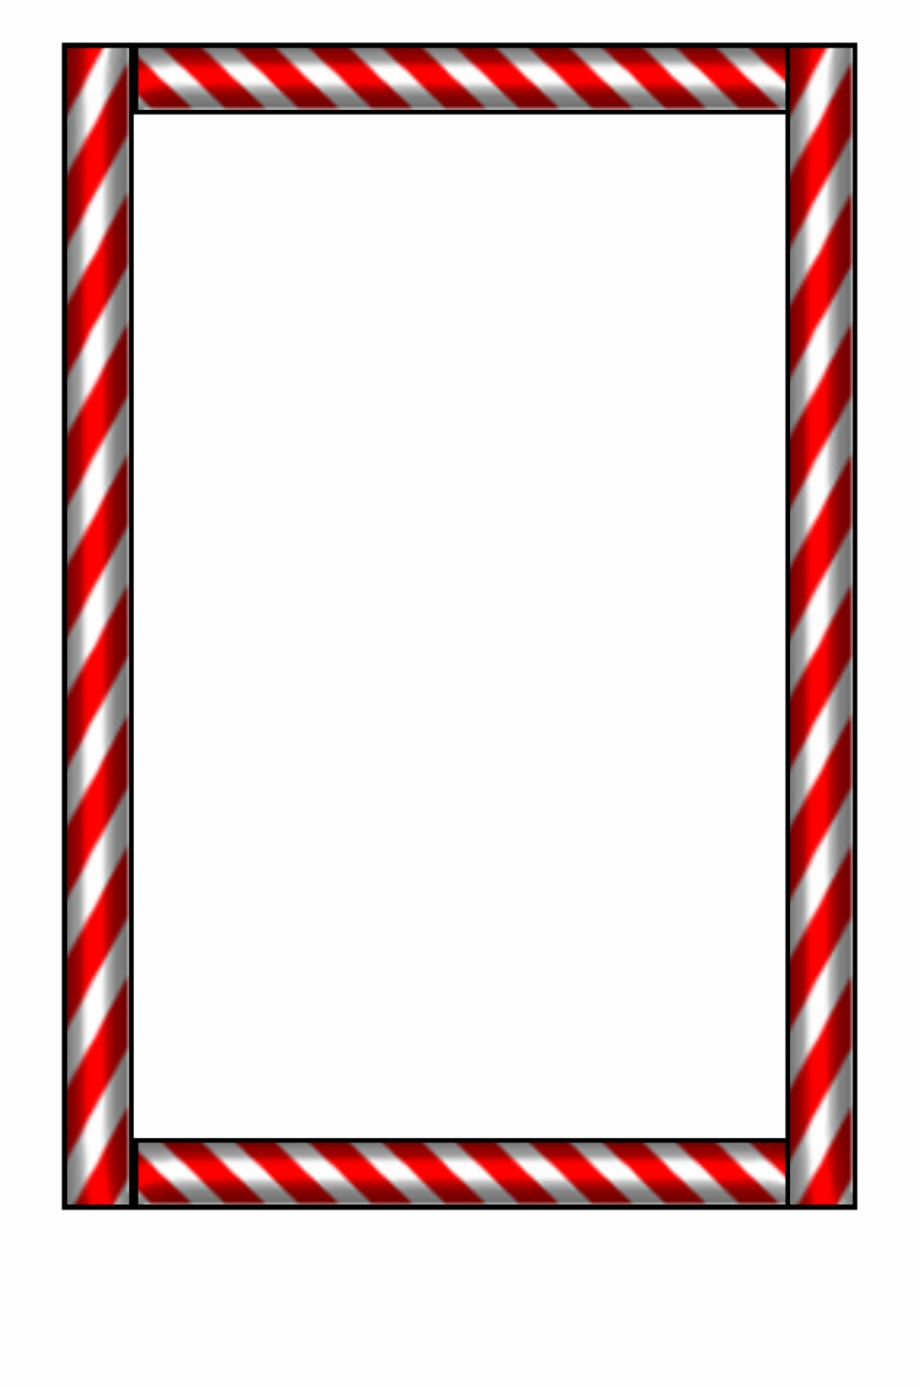 Candy Cane Border Png.